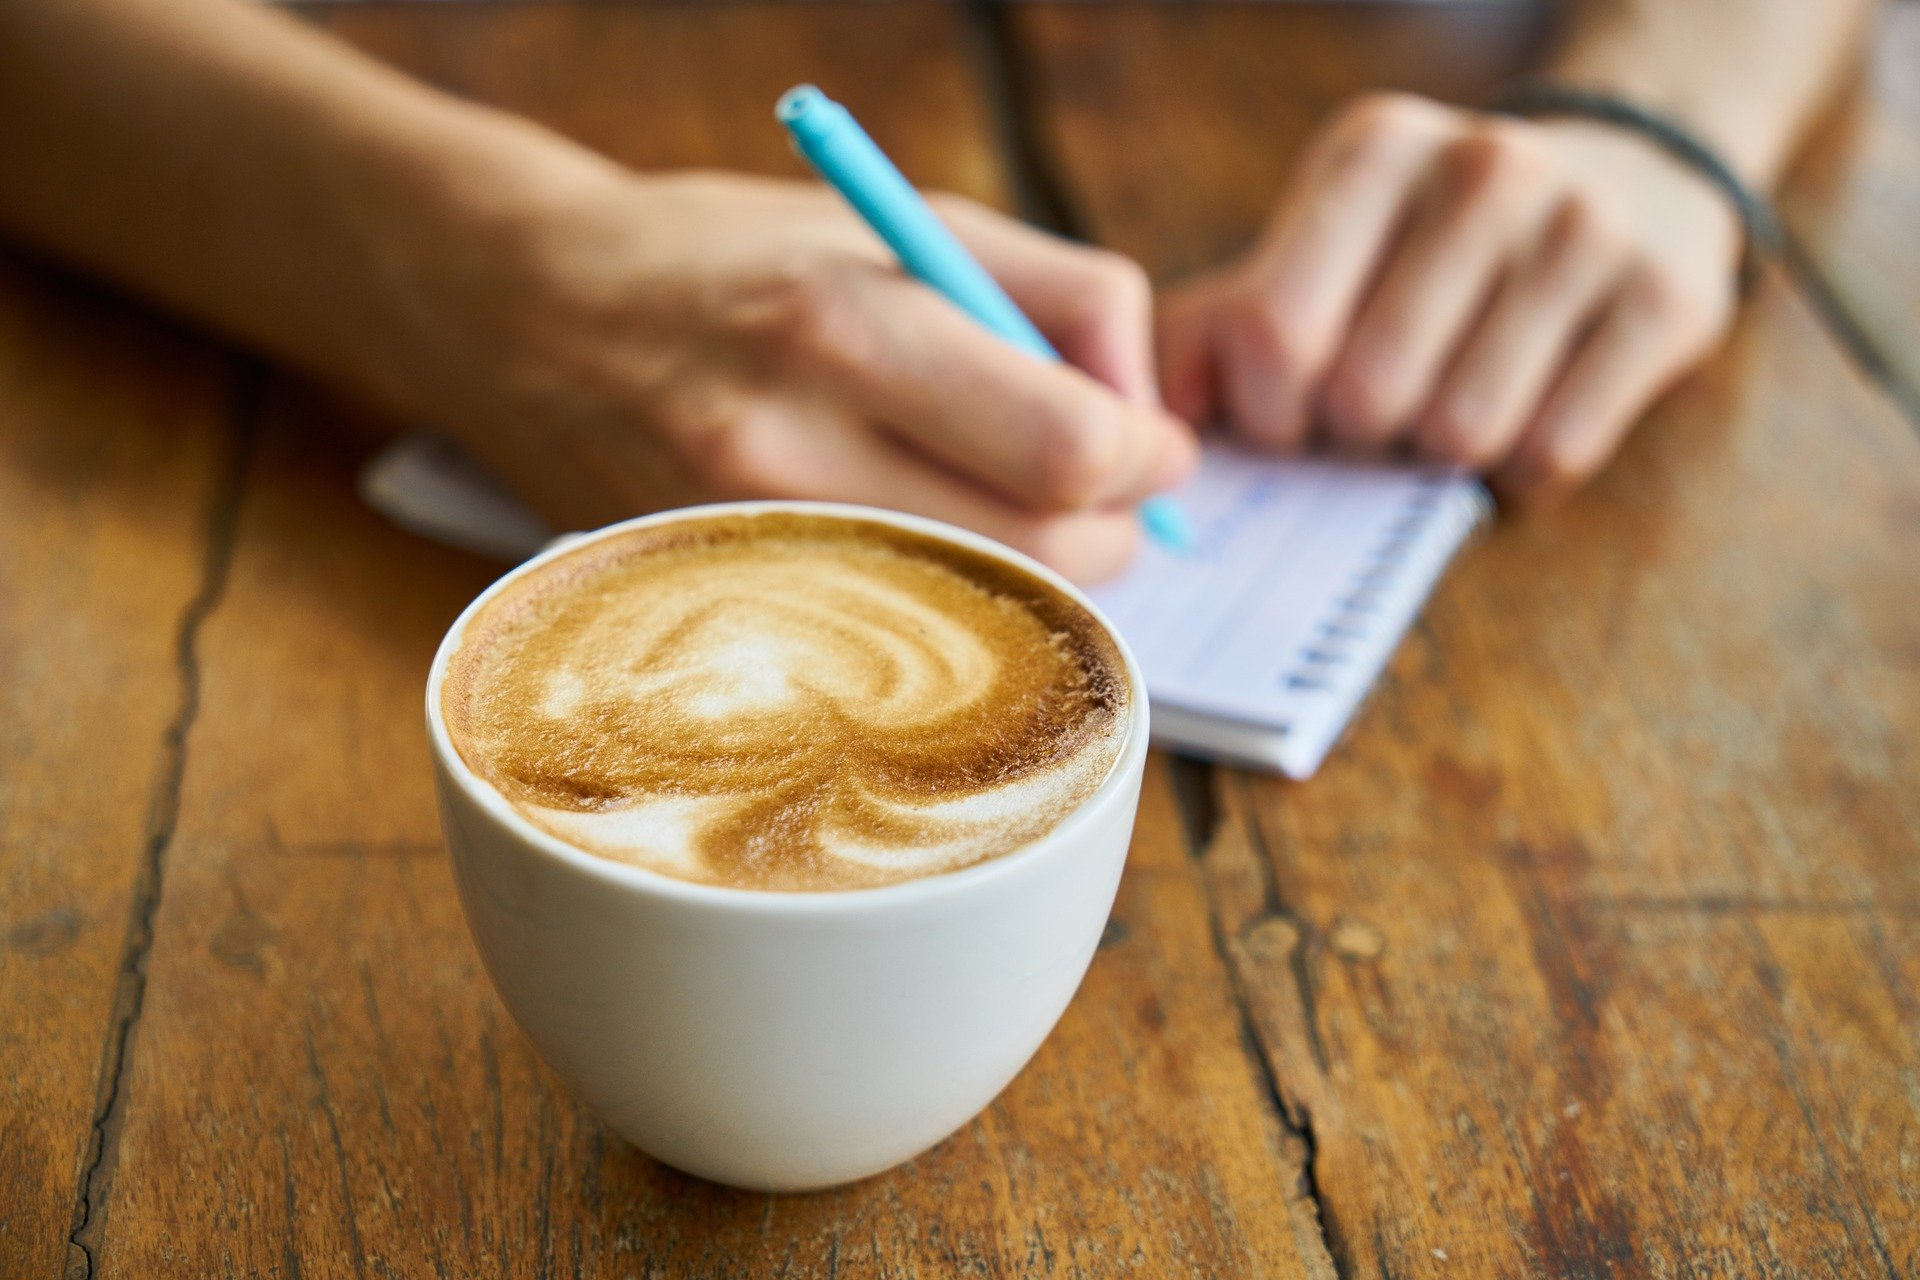 Someone writing in a notebook with a cup of coffee.